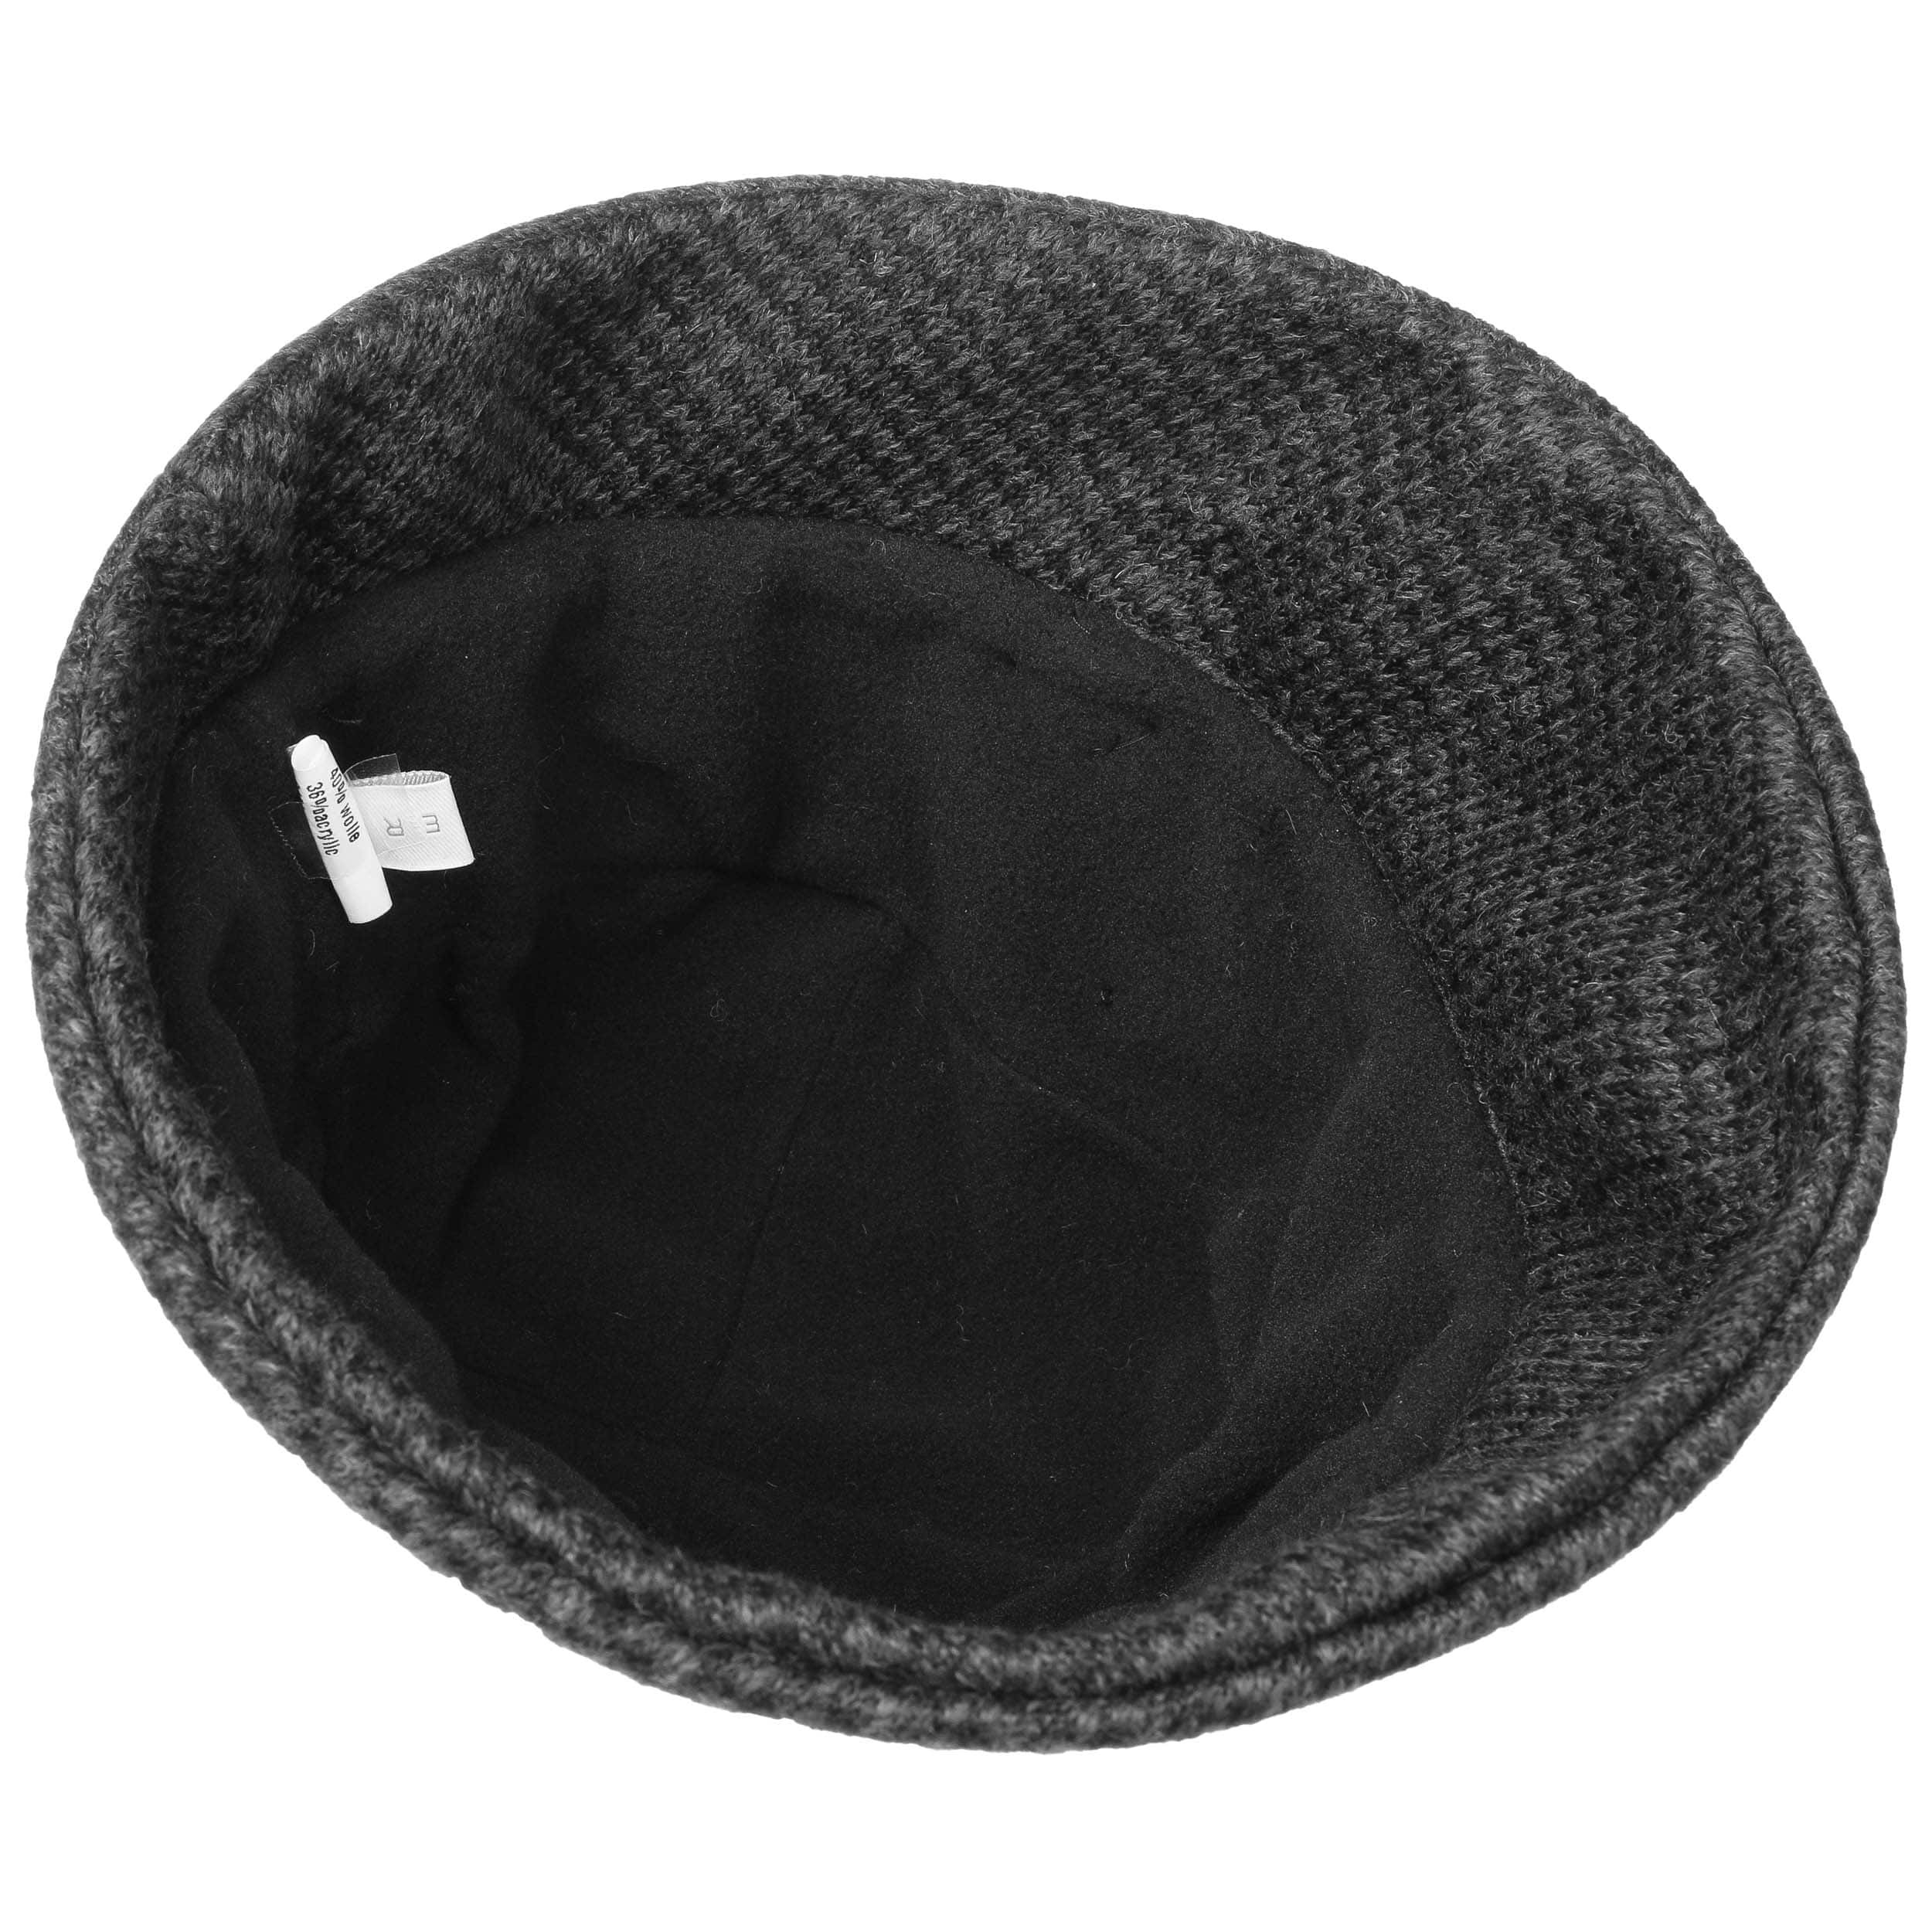 57fc283afeee7 ... Safima Wool Hat with Loop by Lierys - anthracite 2 ...